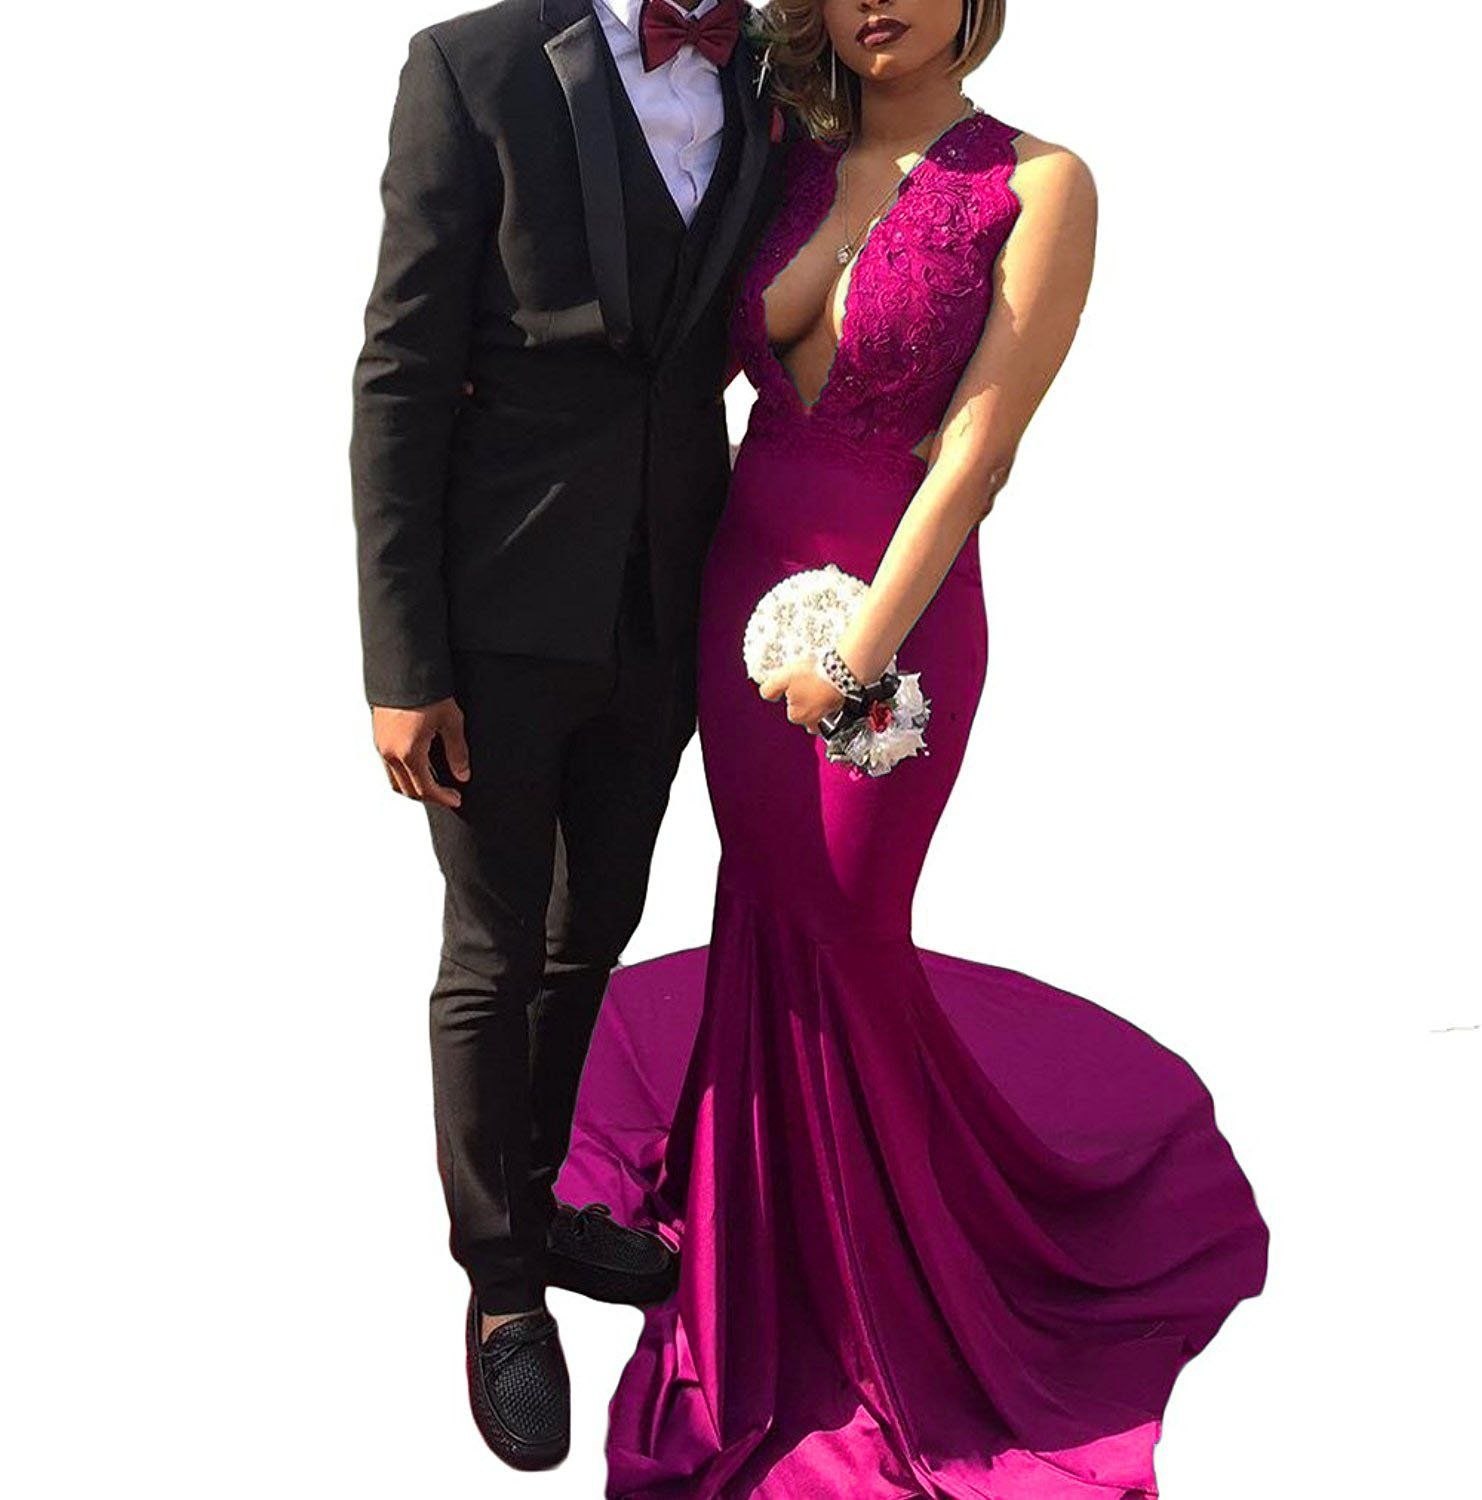 Fashionbride Women's Evening Dresses Long Mermaid Formal Party Gowns 2017 F451HP-US12